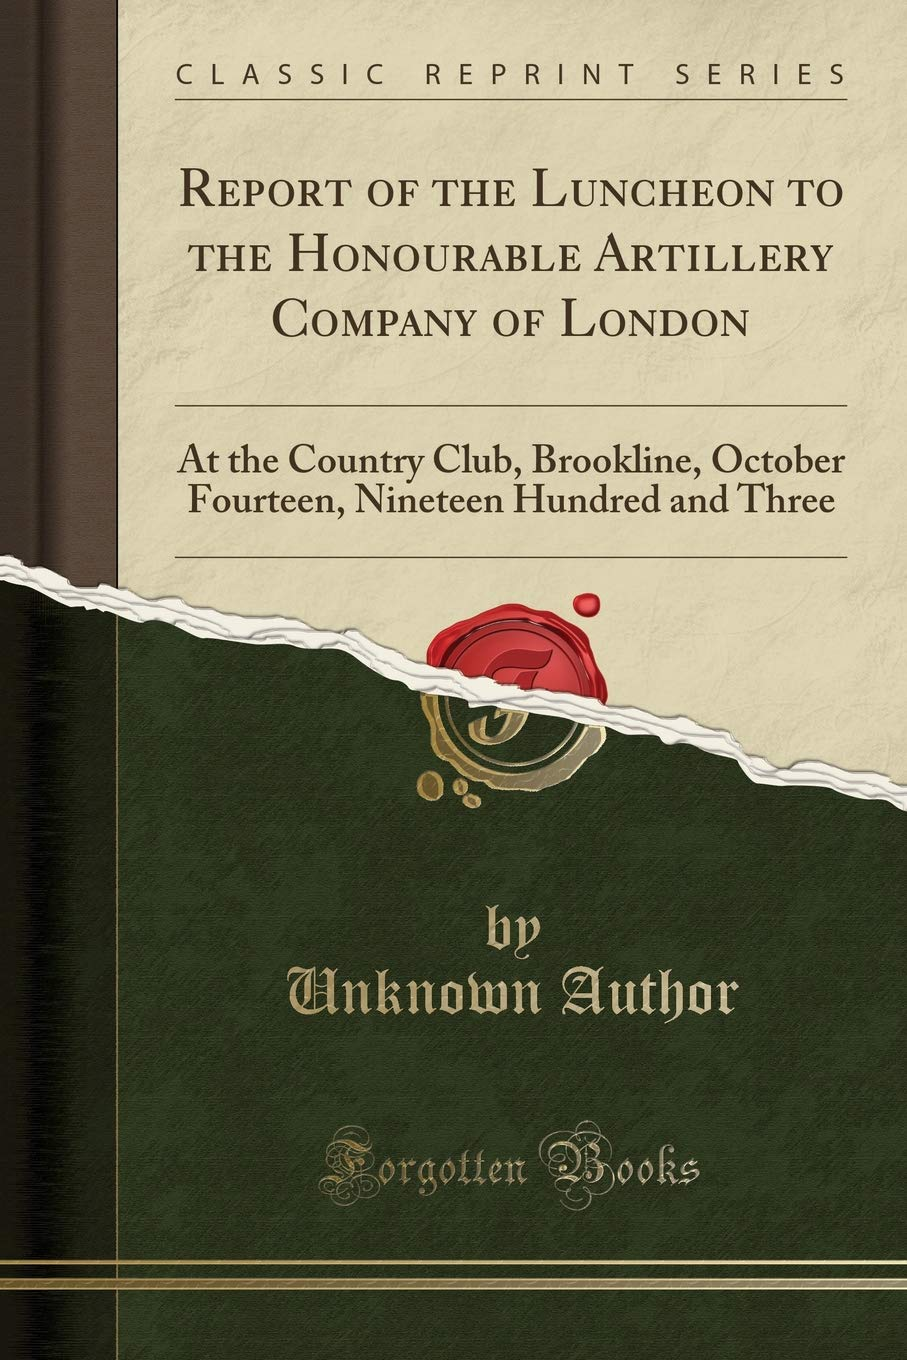 Report of the Luncheon to the Honourable Artillery Company of London: At the Country Club, Brookline, October Fourteen, Nineteen Hundred and Three (Classic Reprint) pdf